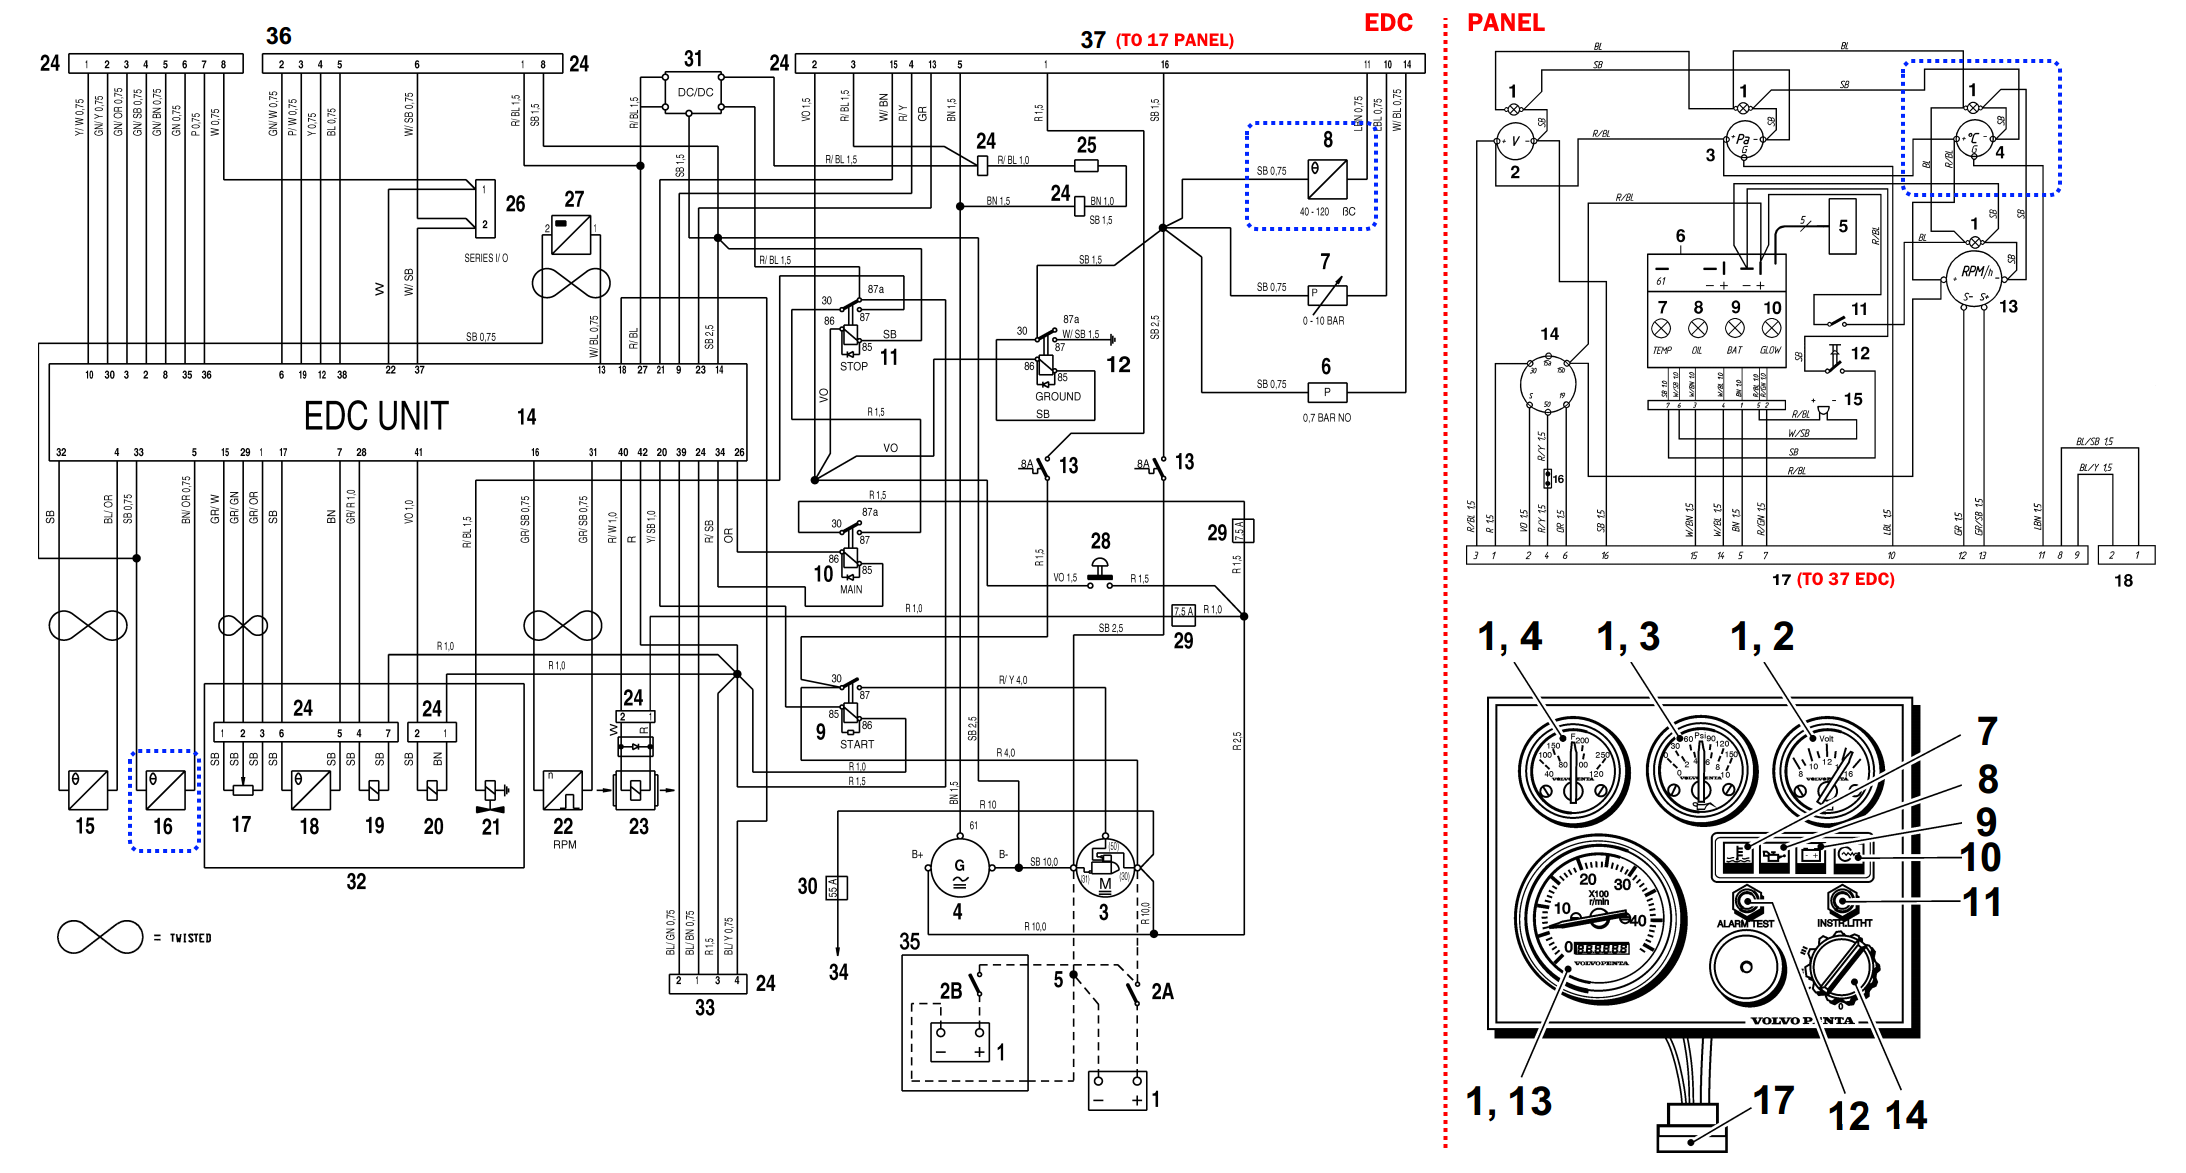 Wiring Diagrams Volvo Penta - Wiring Diagrams Show on